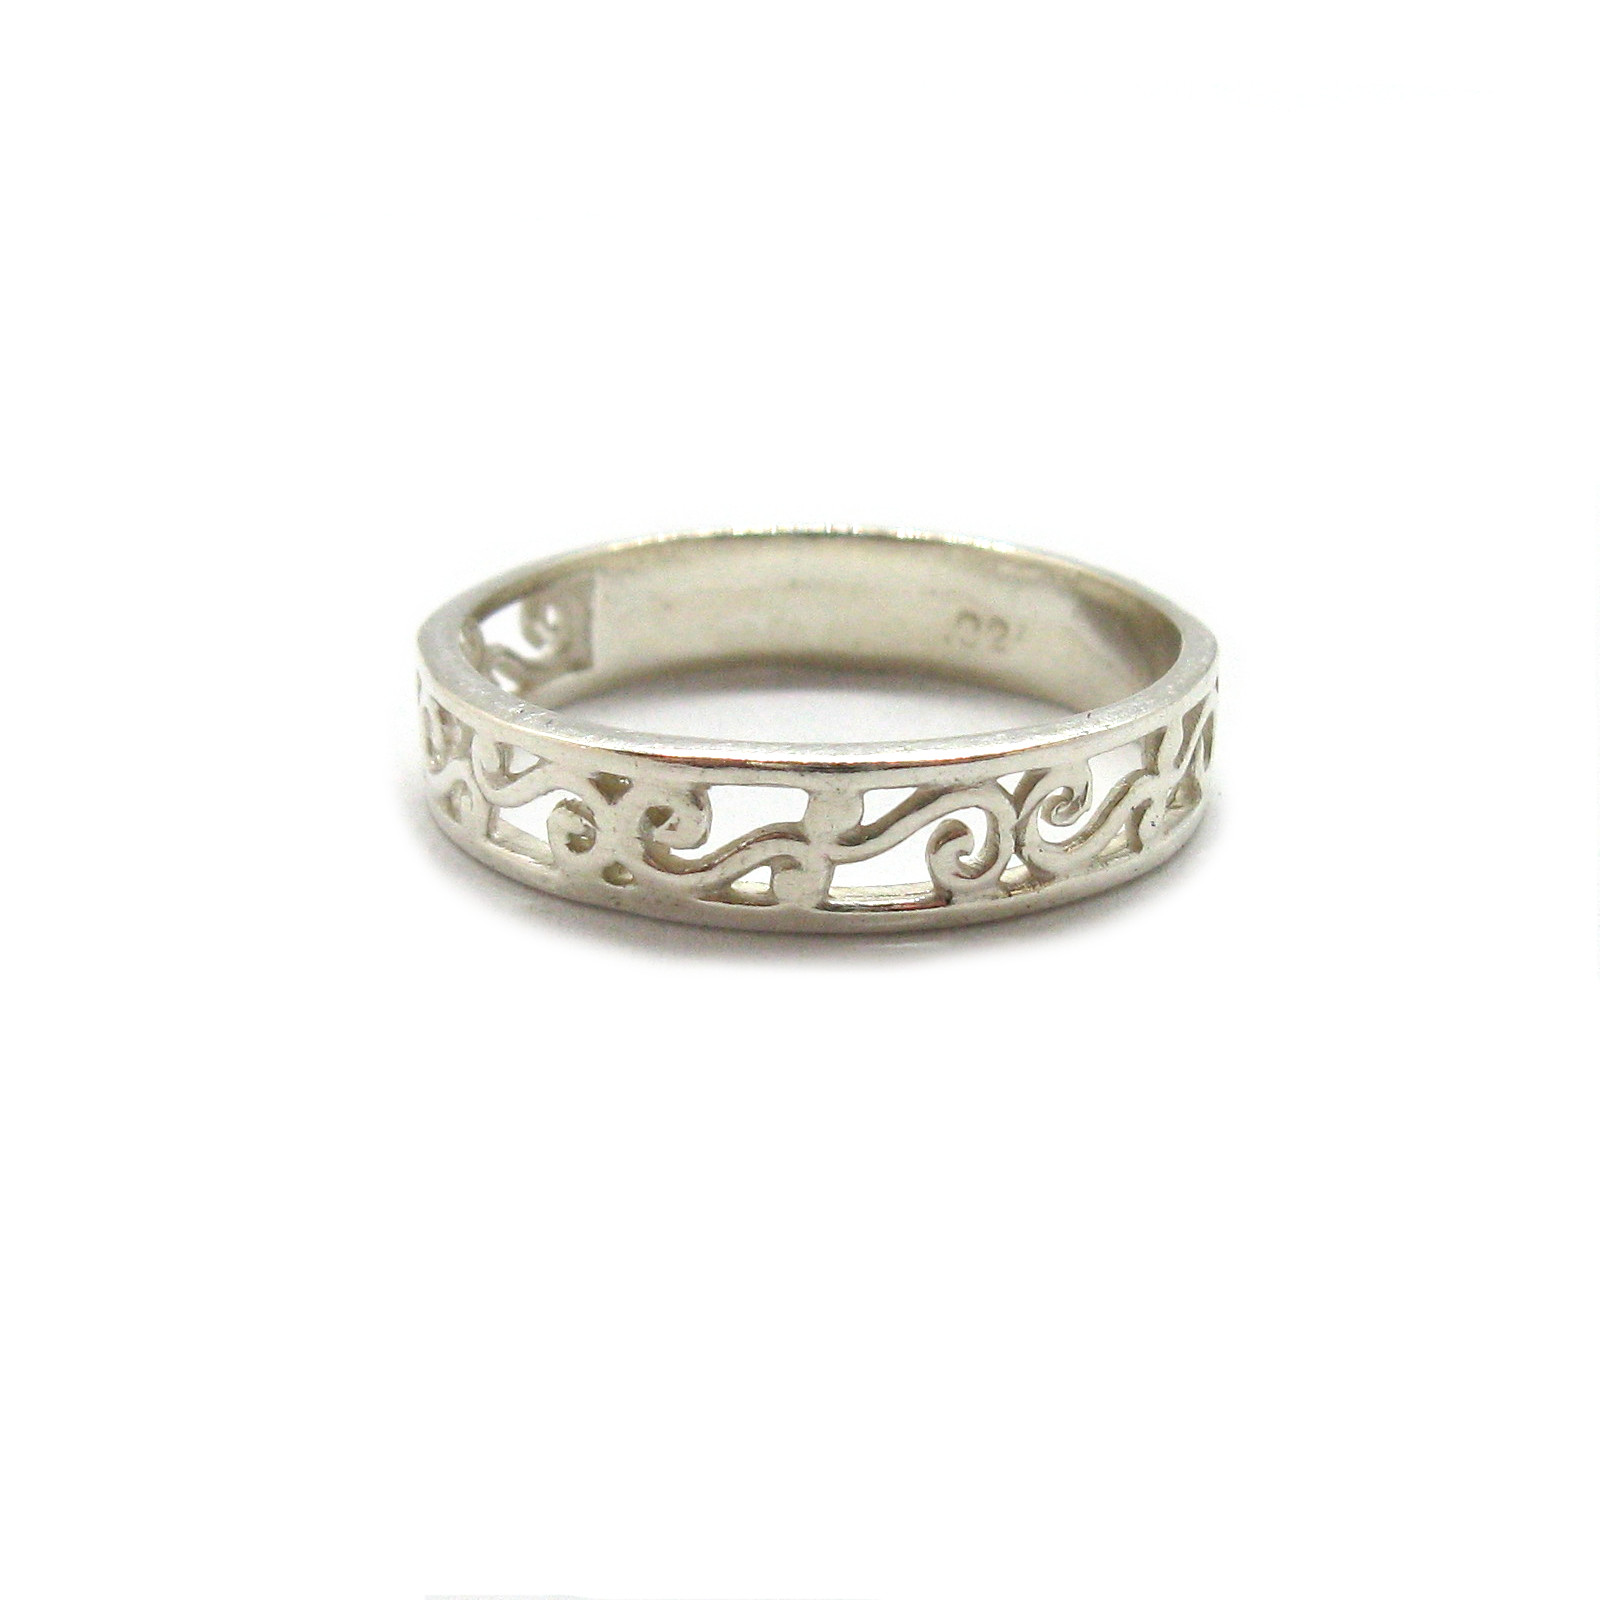 Silver ring - R001910